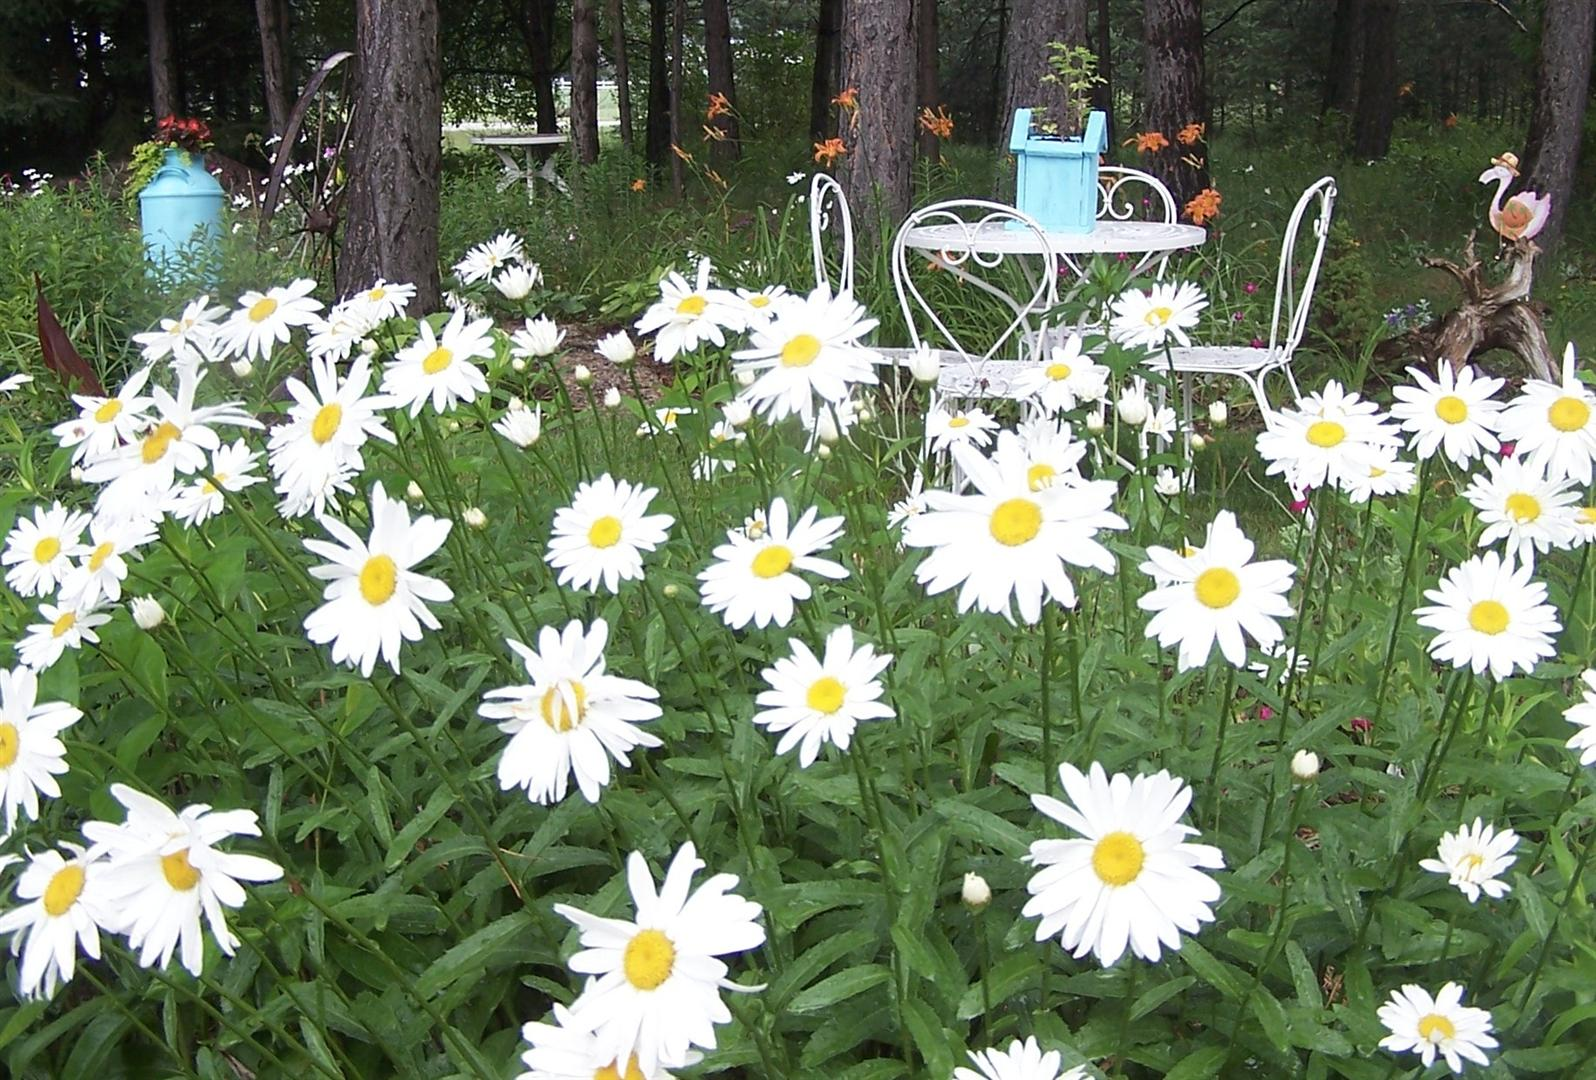 Perennial passion shasta daisies make great centerpieces to my eyes few flowers drag down the looks of garden more than a big clump of dead shastas but for the next week or so they will look all fresh izmirmasajfo